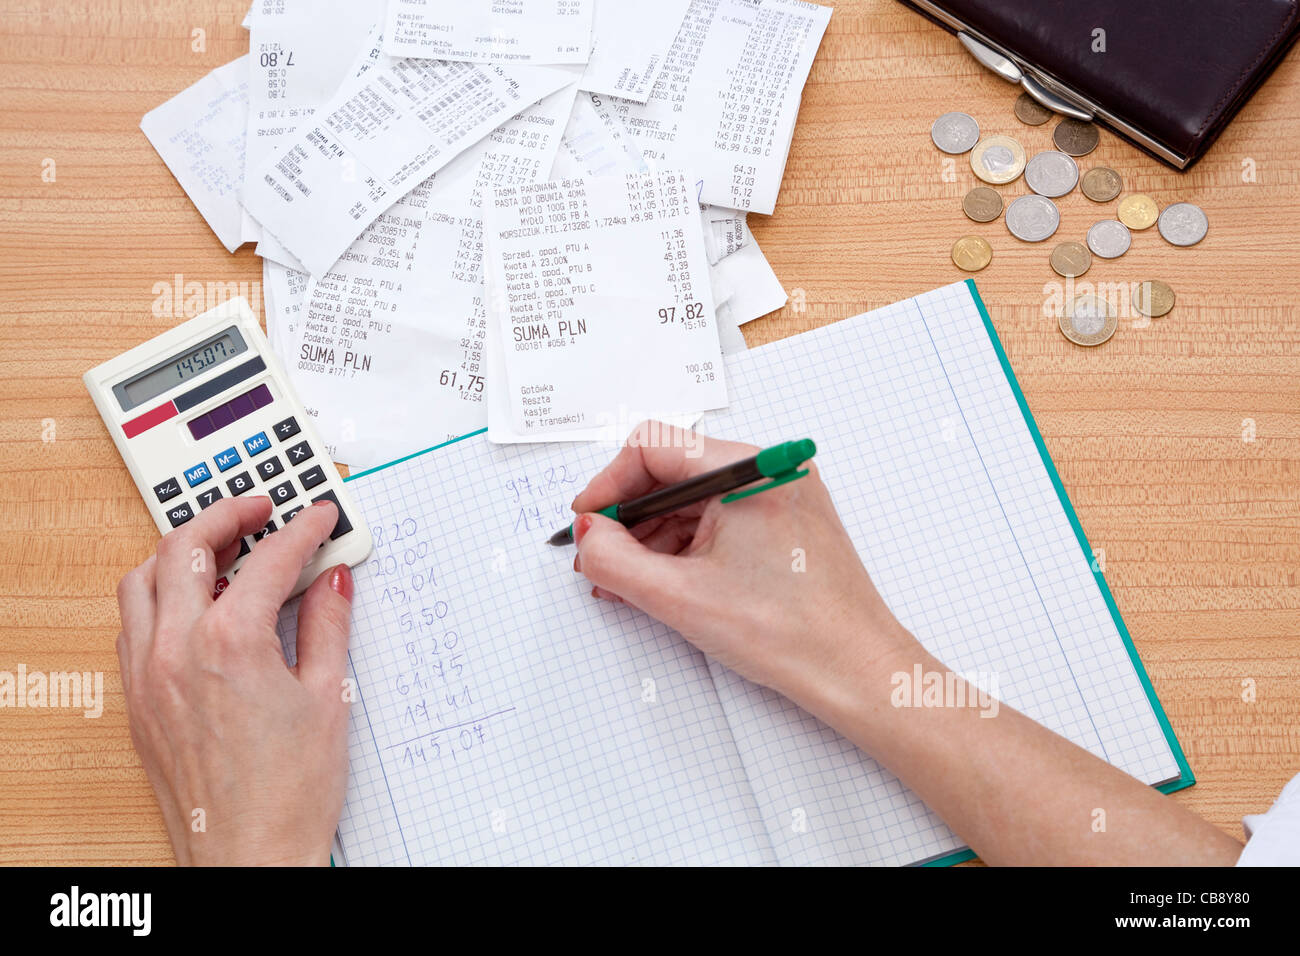 purse with money and shopping receipt on table - Stock Image